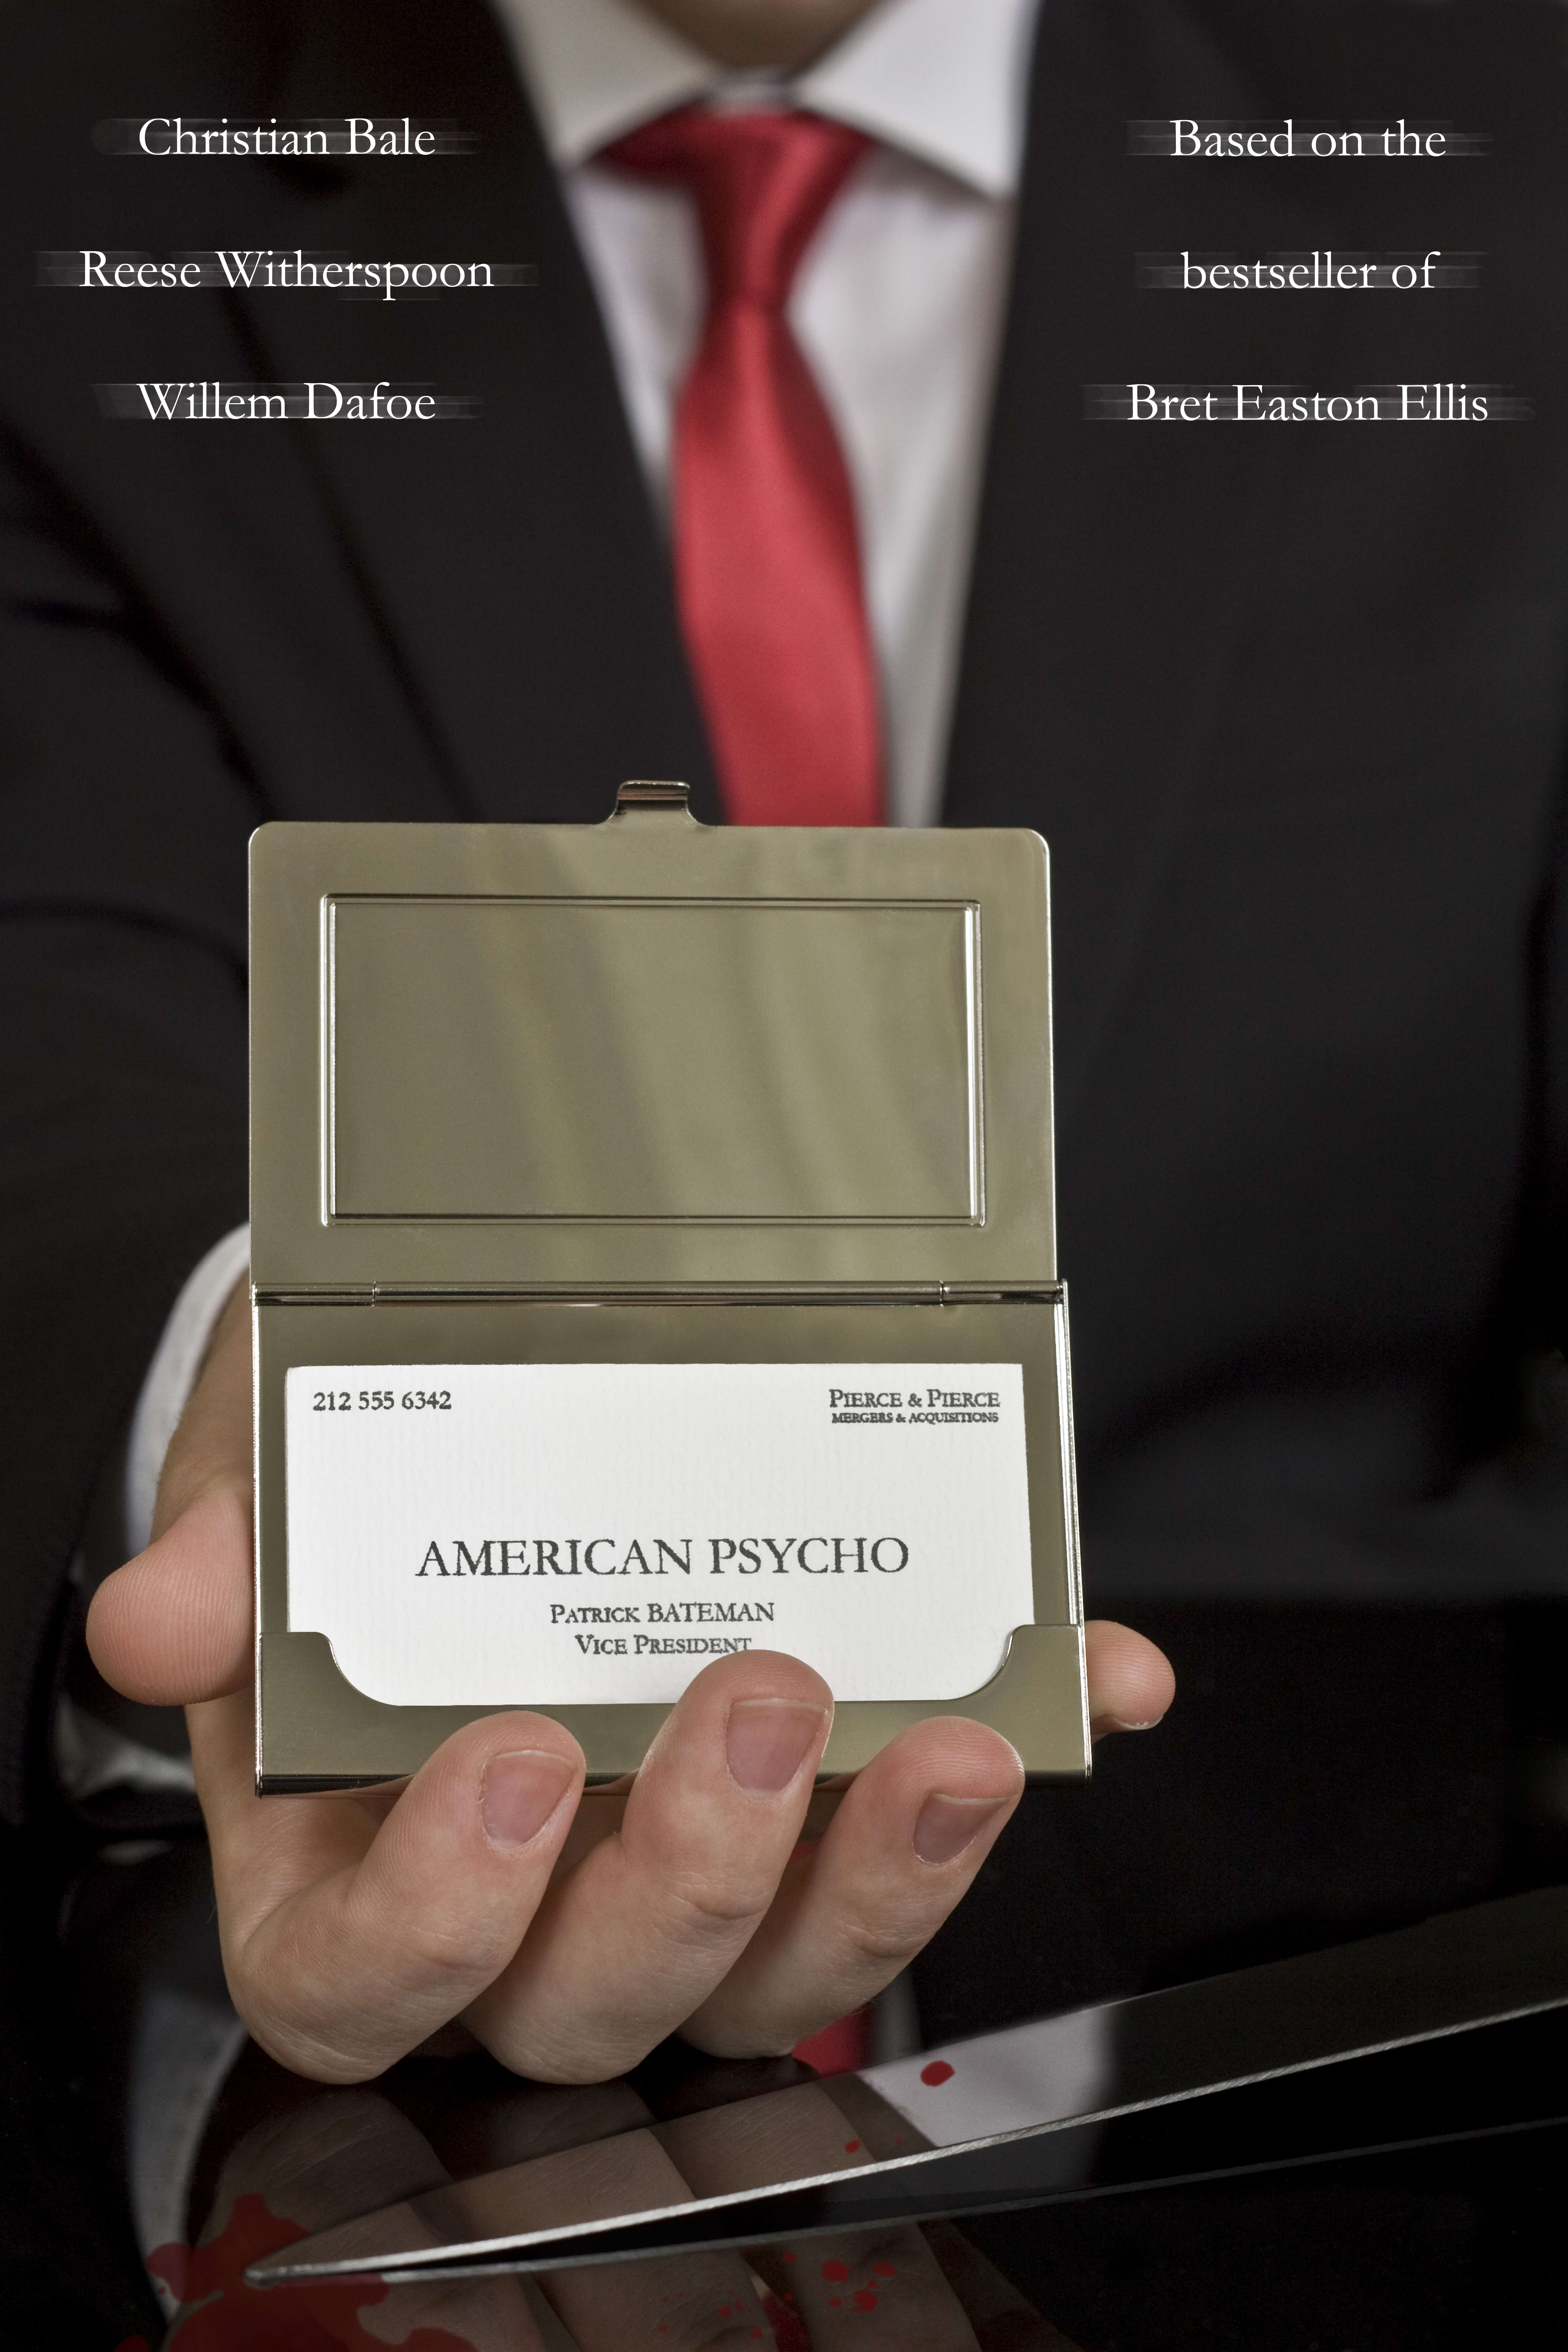 American Psycho Movie Poster by Maikel-S on DeviantArt